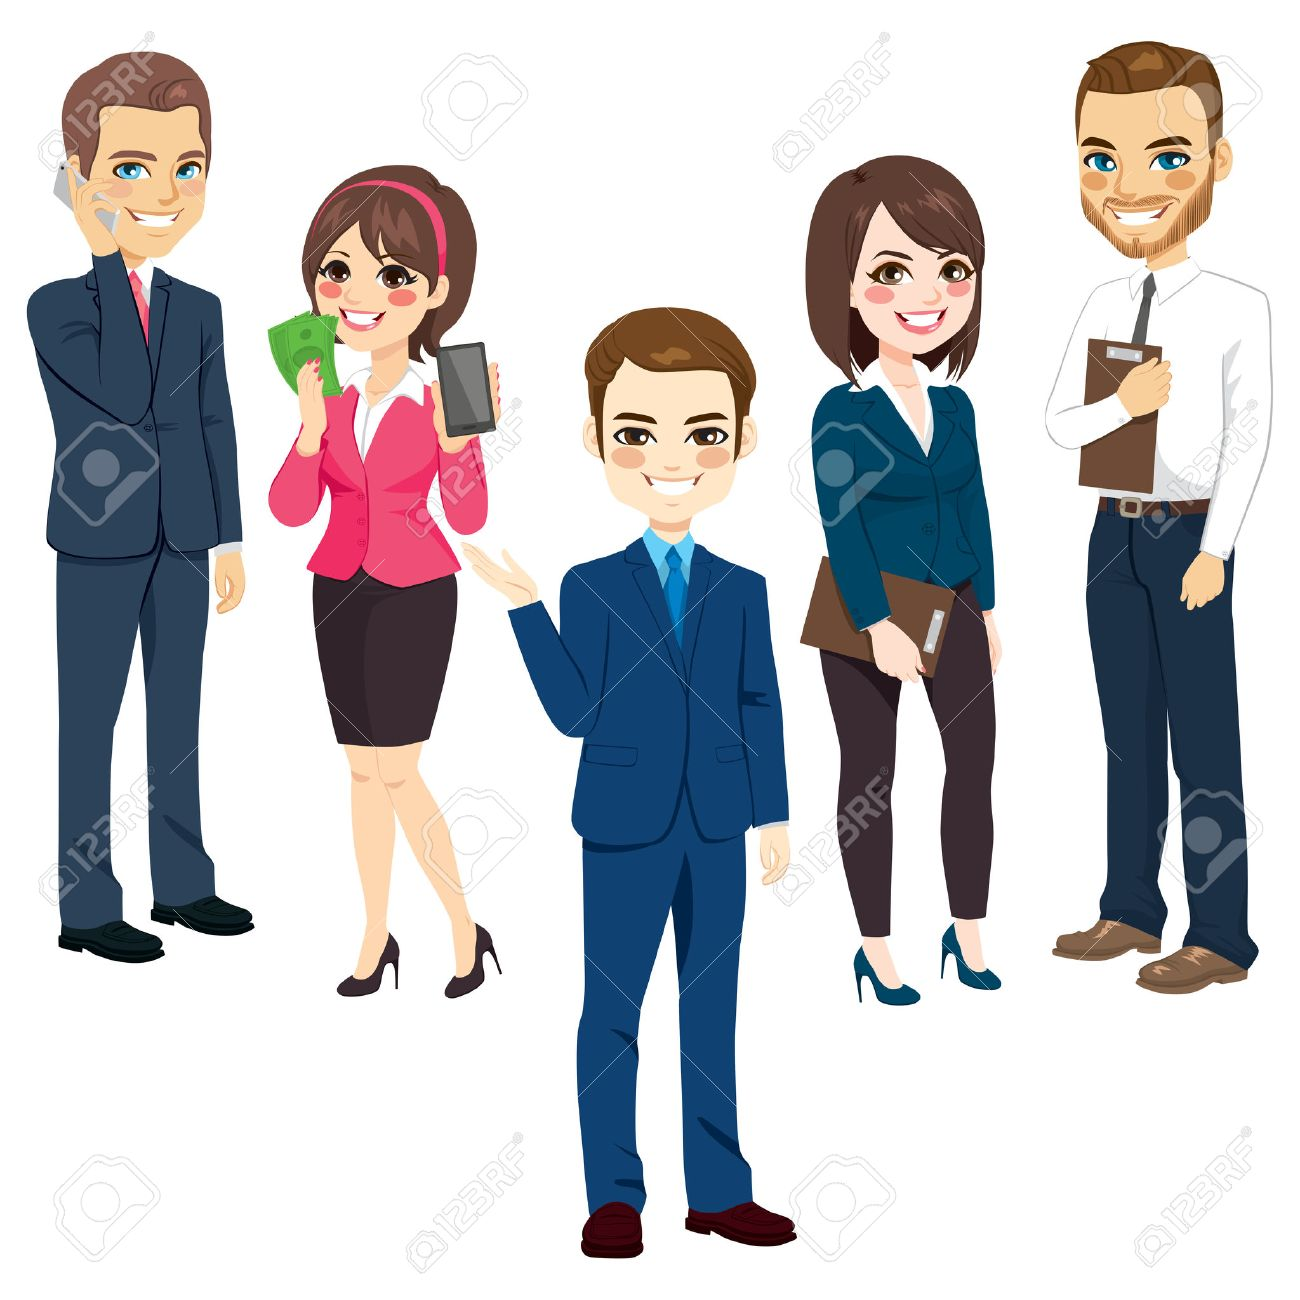 Group of men and women business people standing team concept - 67972344